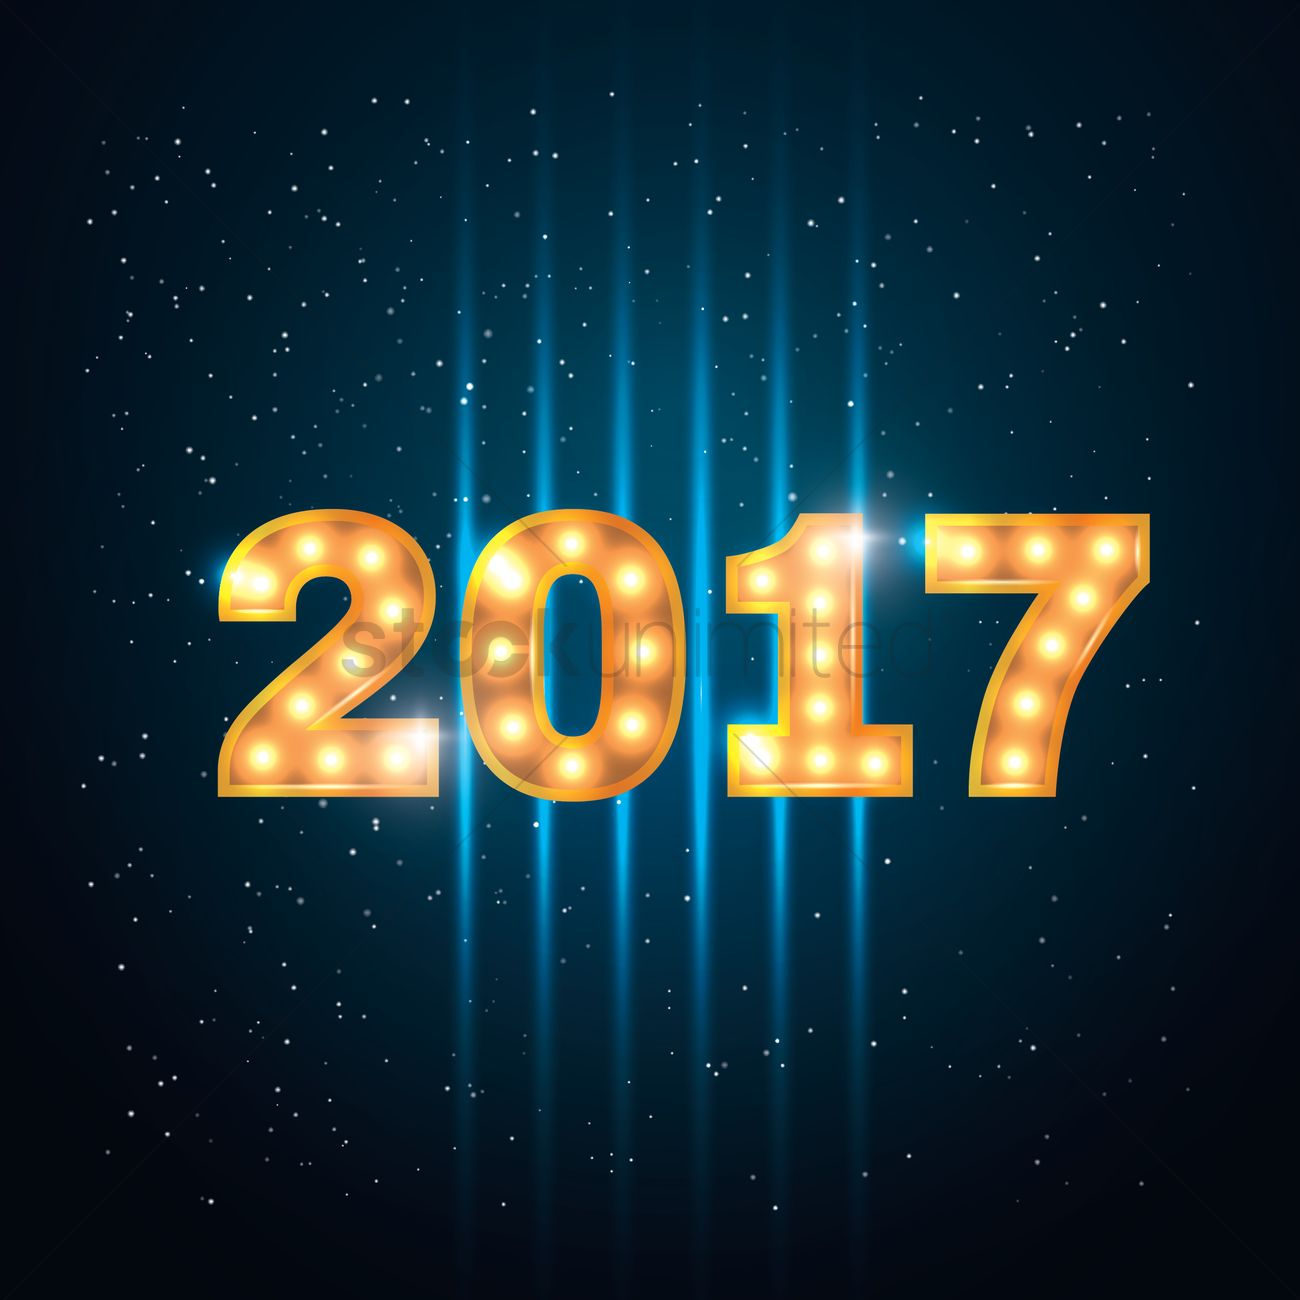 2017 new year greeting Vector Image   1940183   StockUnlimited 2017 new year greeting vector graphic